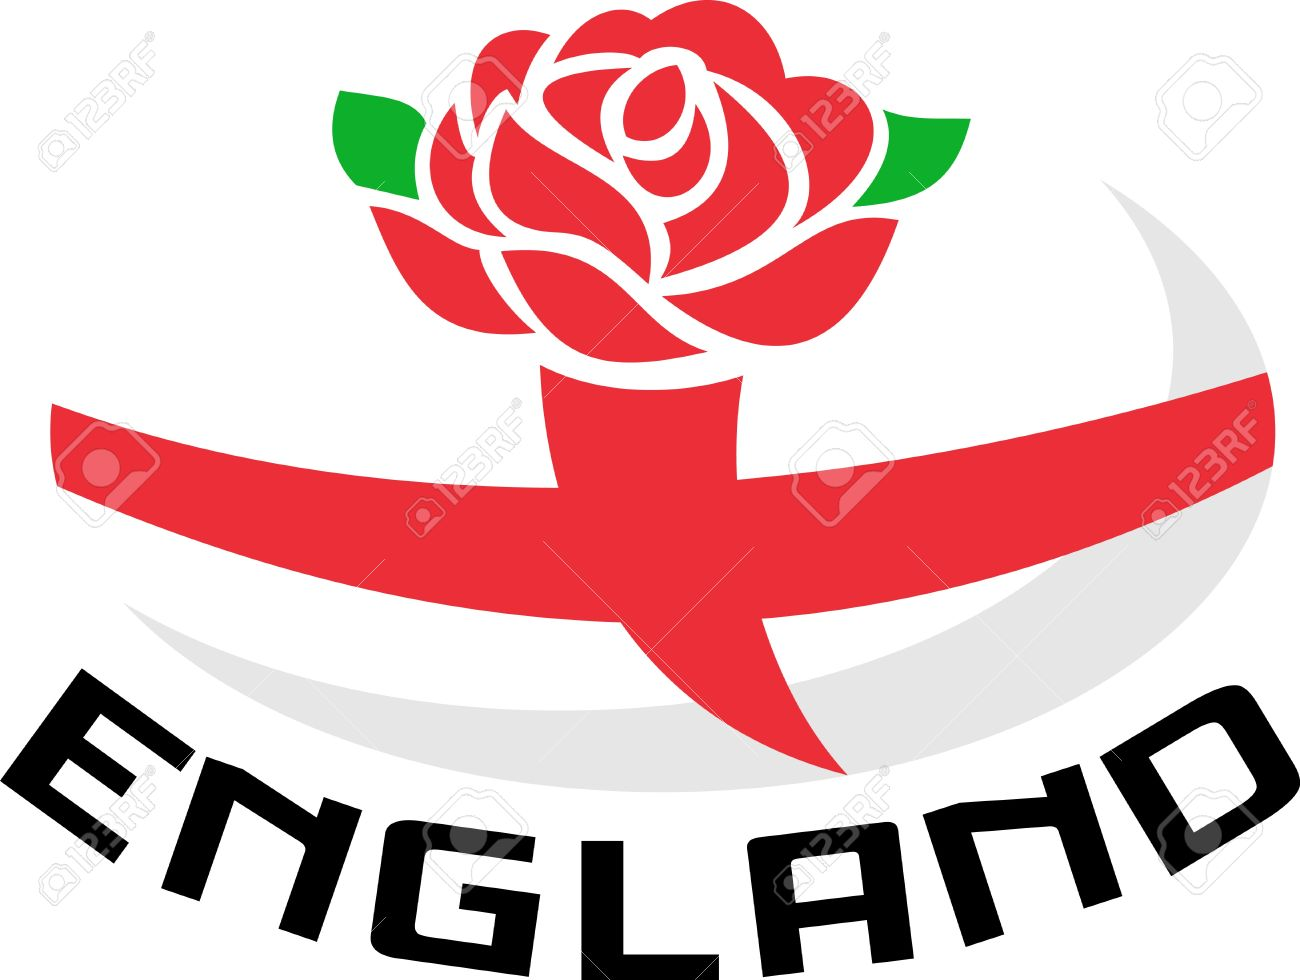 england rugby stock photos royalty free england rugby images and